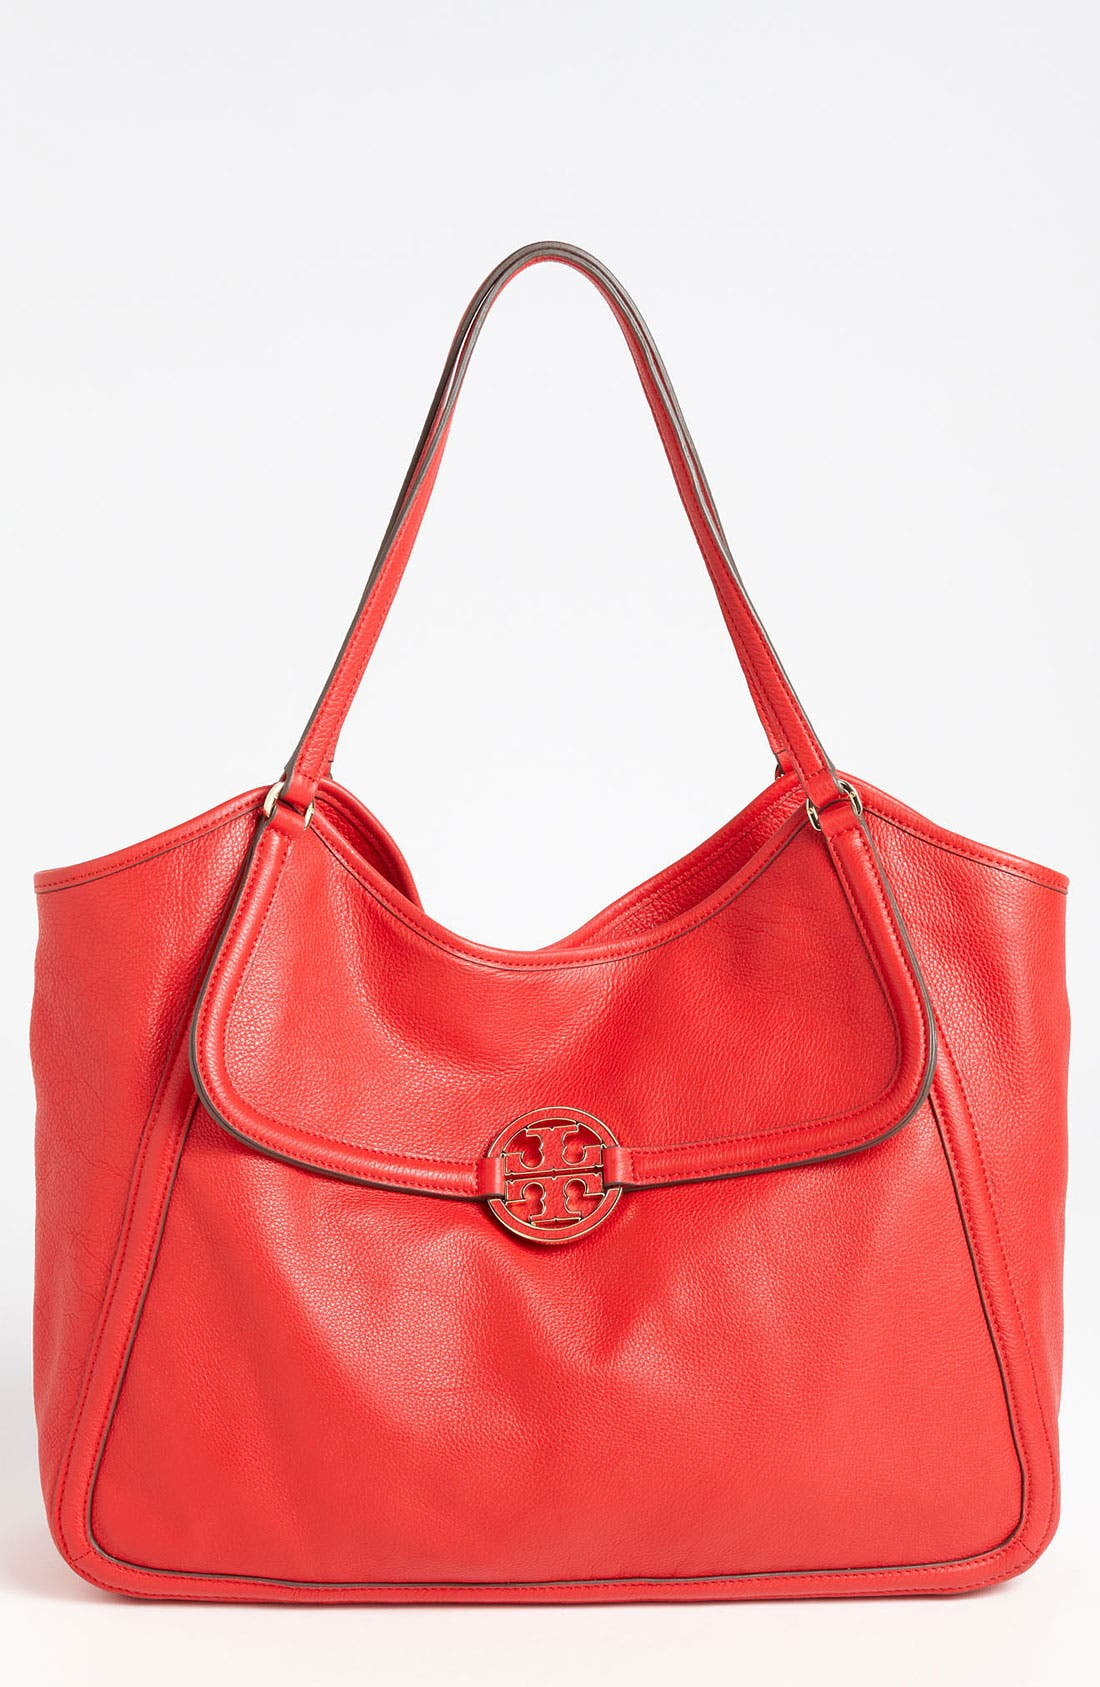 Main Image - Tory Burch 'Amanda' Leather Tote